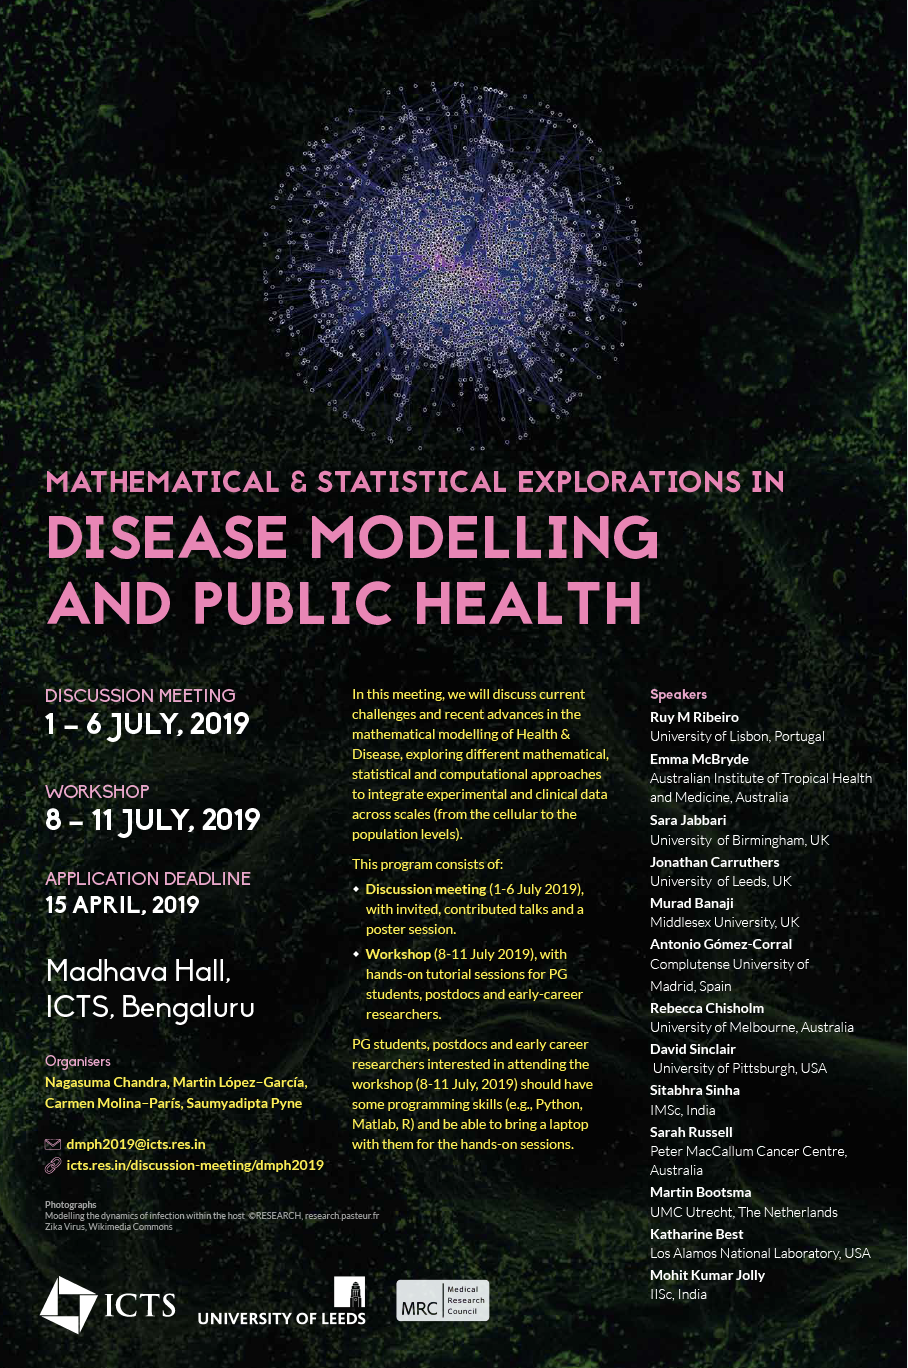 Mathematical and statistical explorations in disease